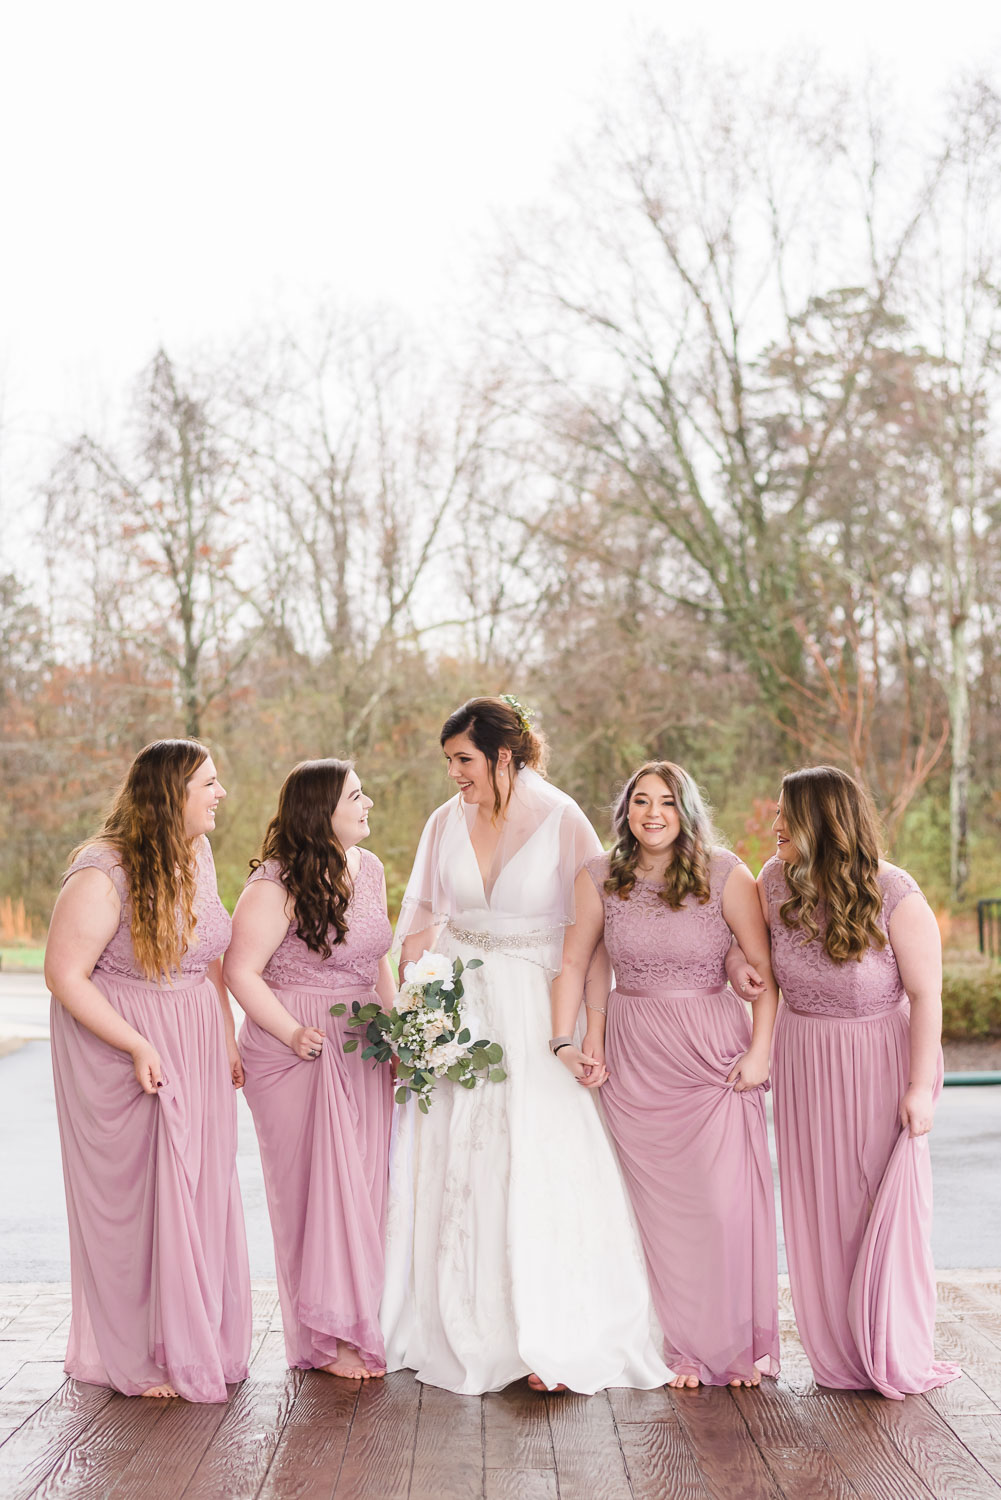 bride and bridesmaids outside in rain in february.